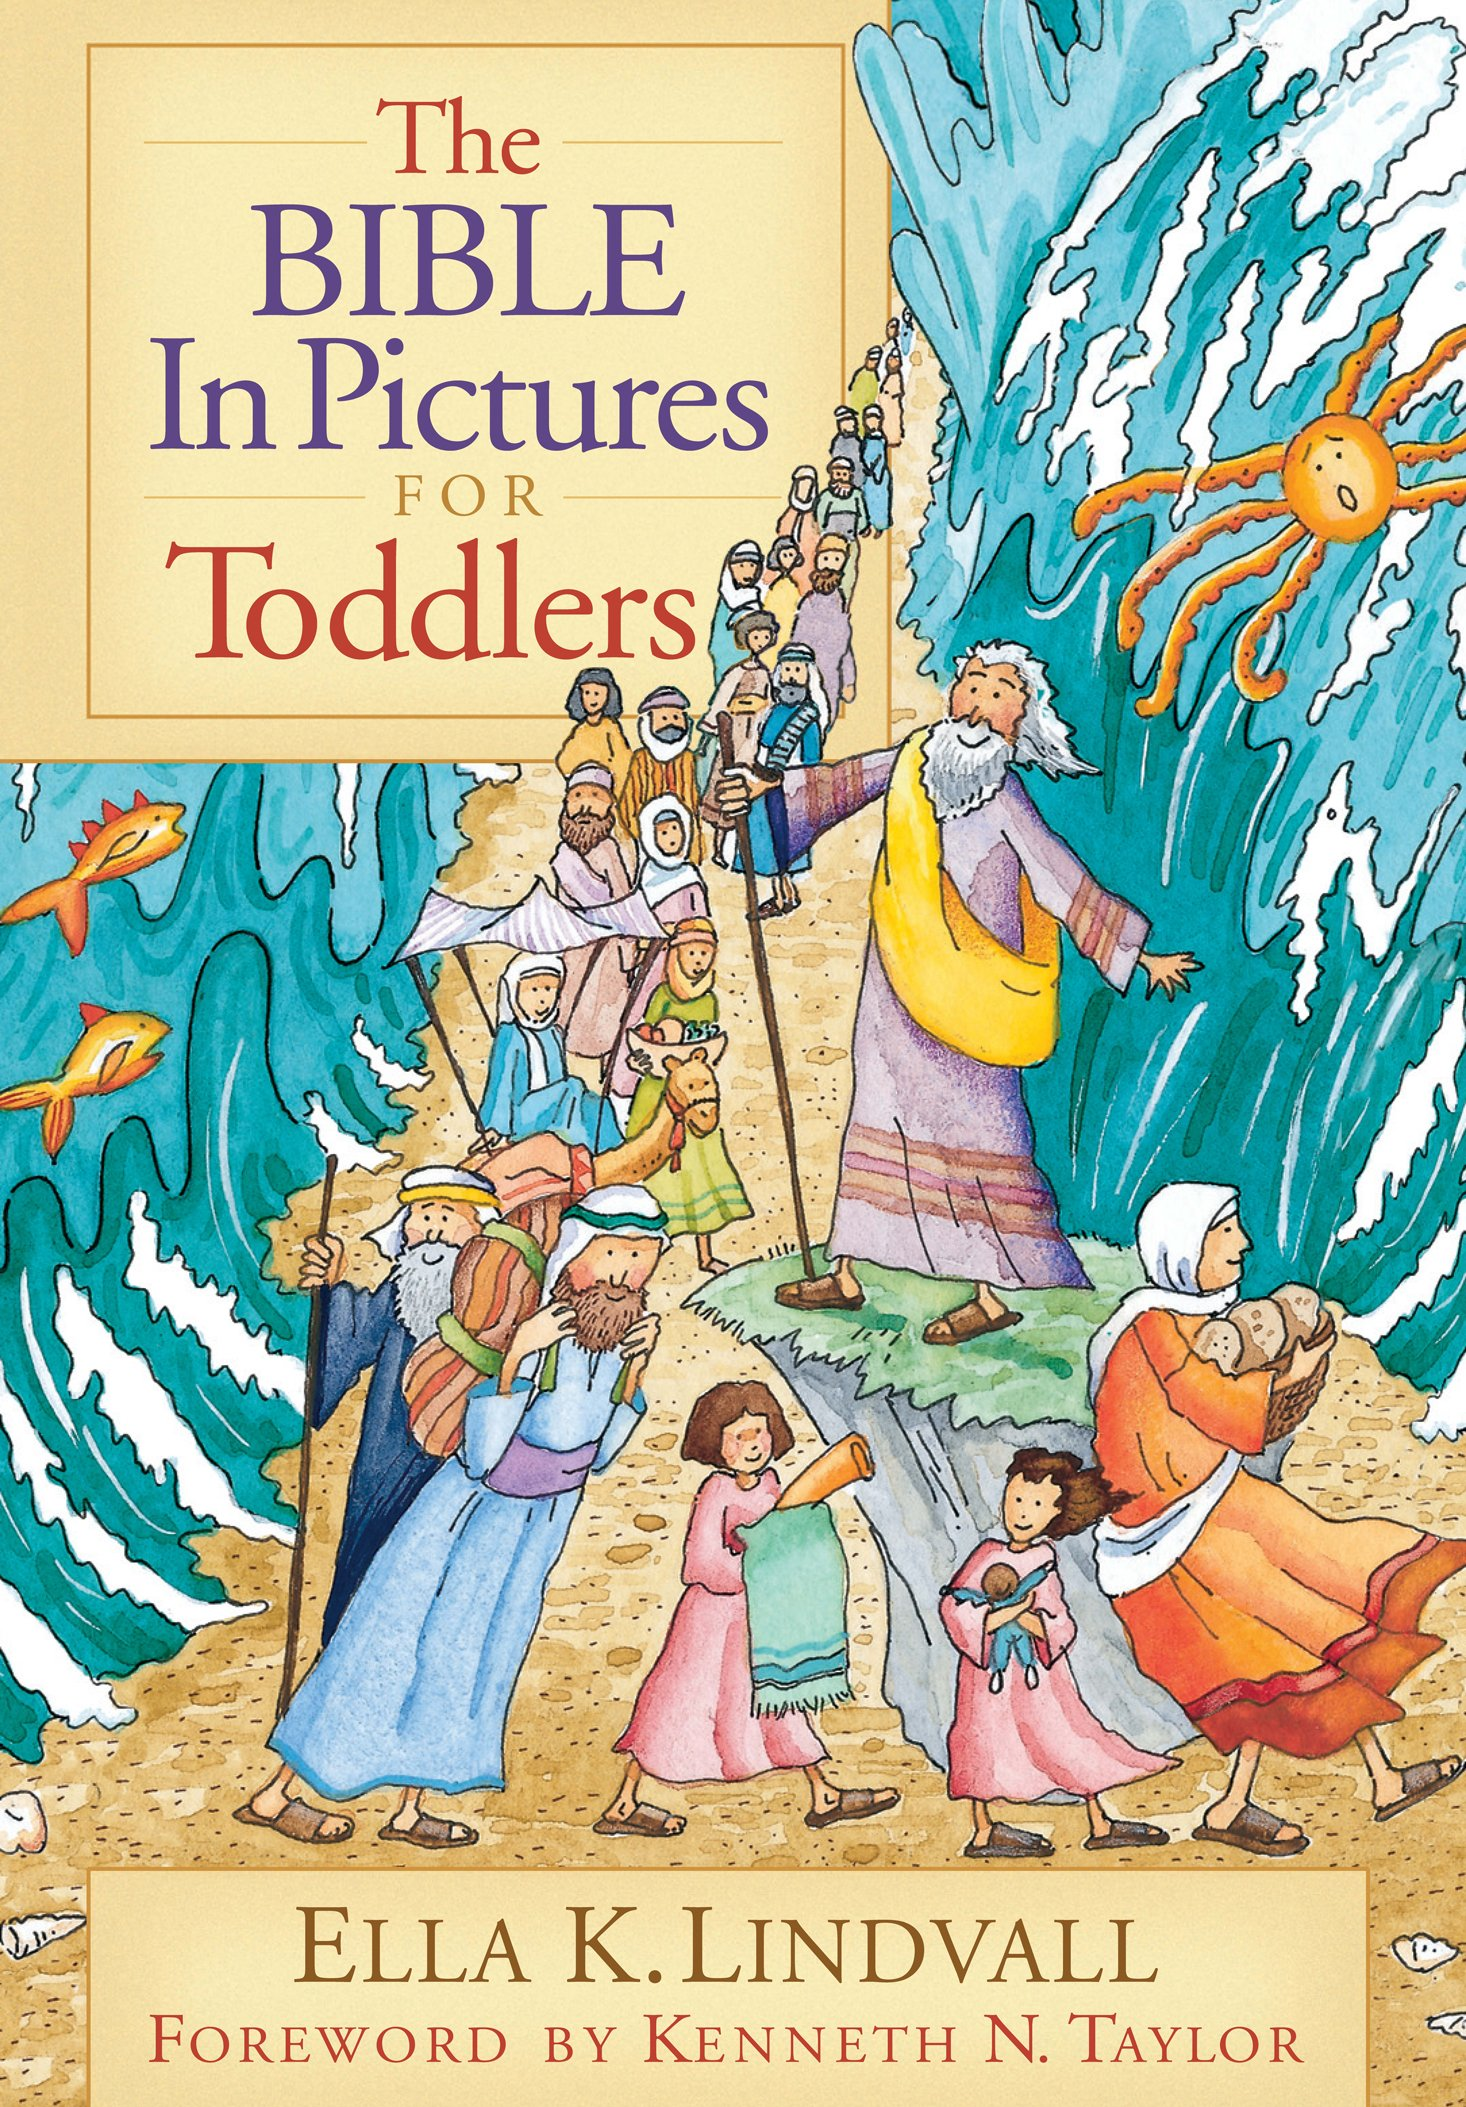 The Bible in Pictures for Toddlers - Ella K. LindvallAges 1-4Seventy of the most loved stories from both the Old and New Testaments are retold in an entertaining and expressive manner.